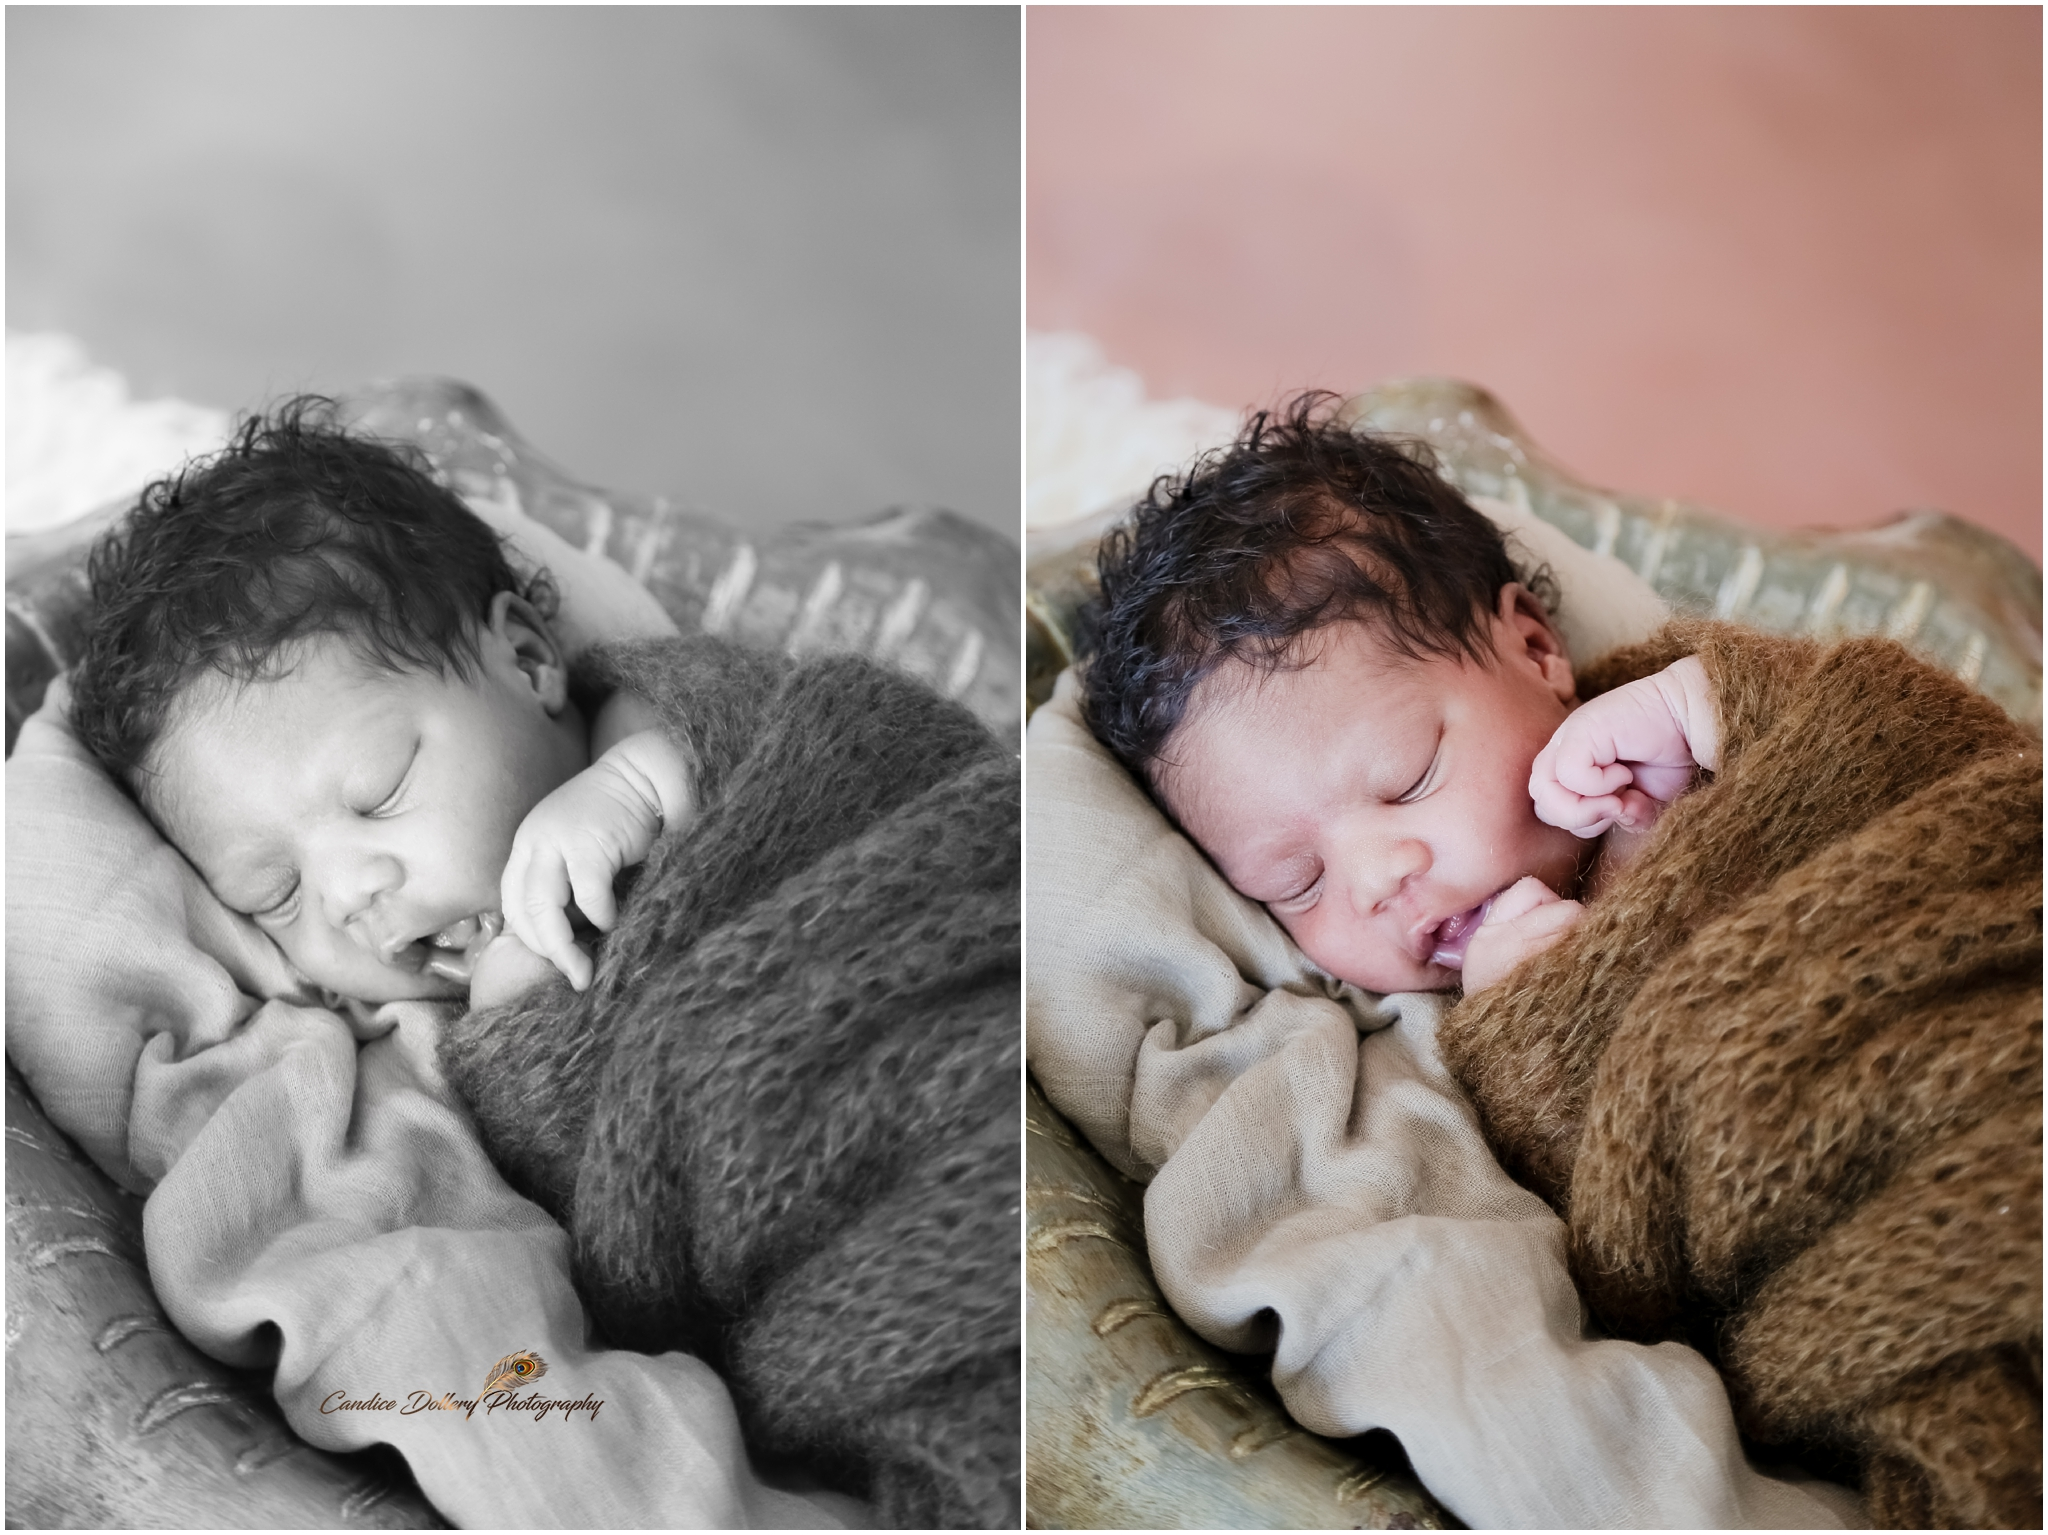 newborn-phemelo-candice-dollery-photography_1859